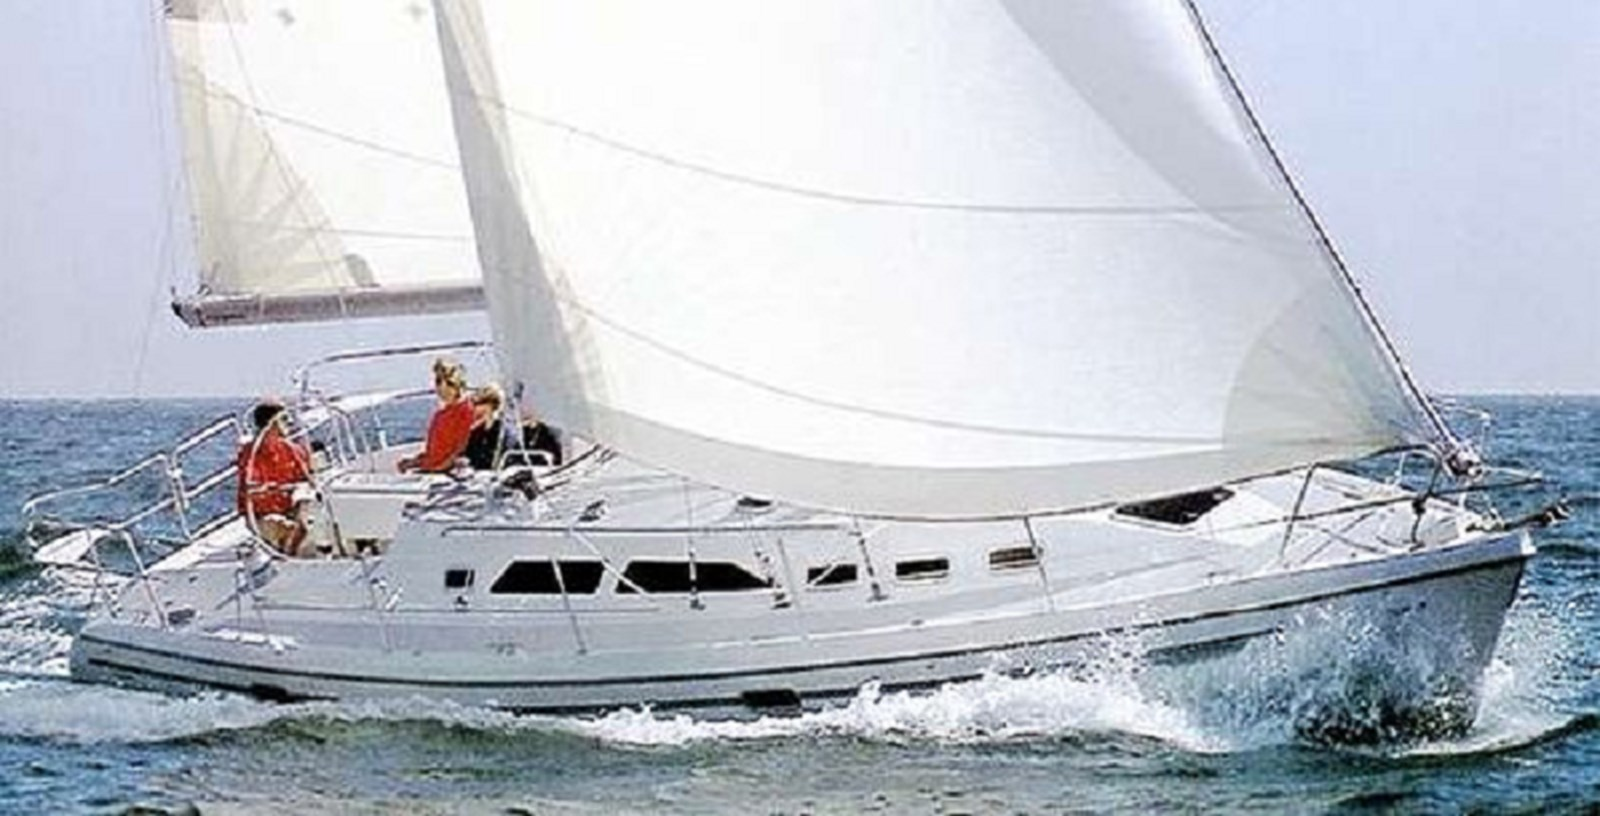 1 1998 CATALINA 380 Cruising Sailboat 2947708